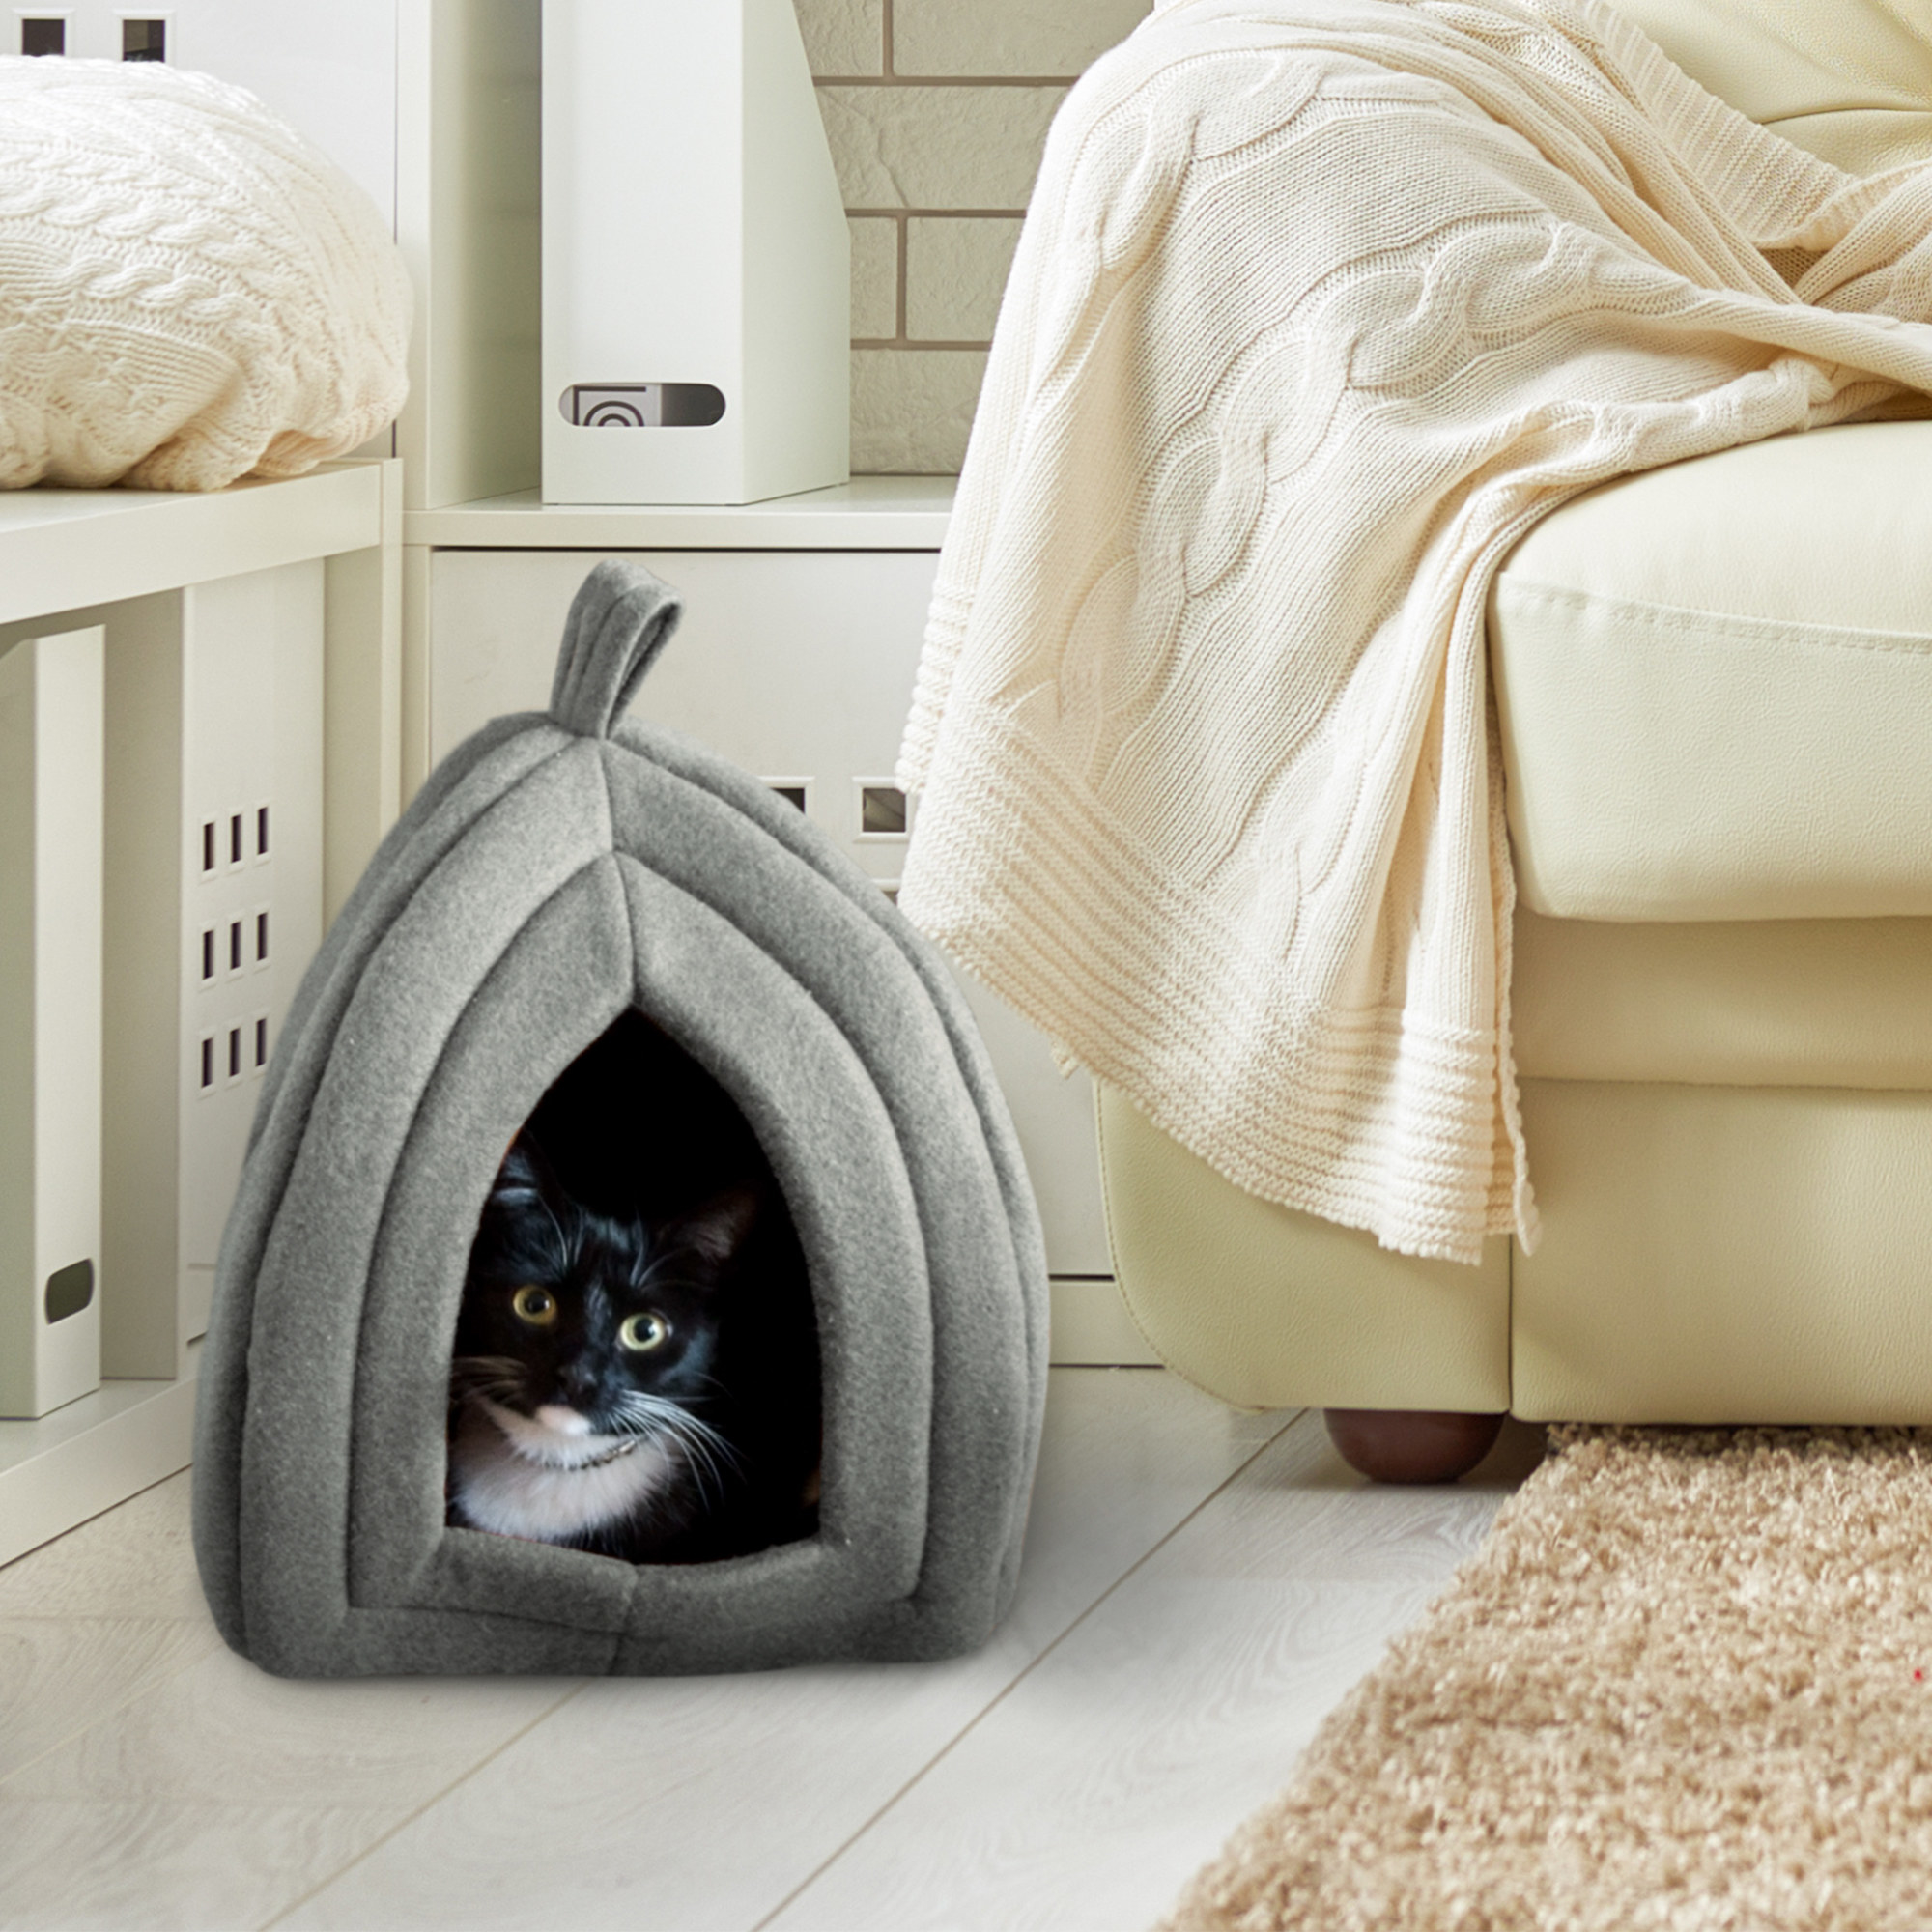 A tuxedo cat in a grey pet tent